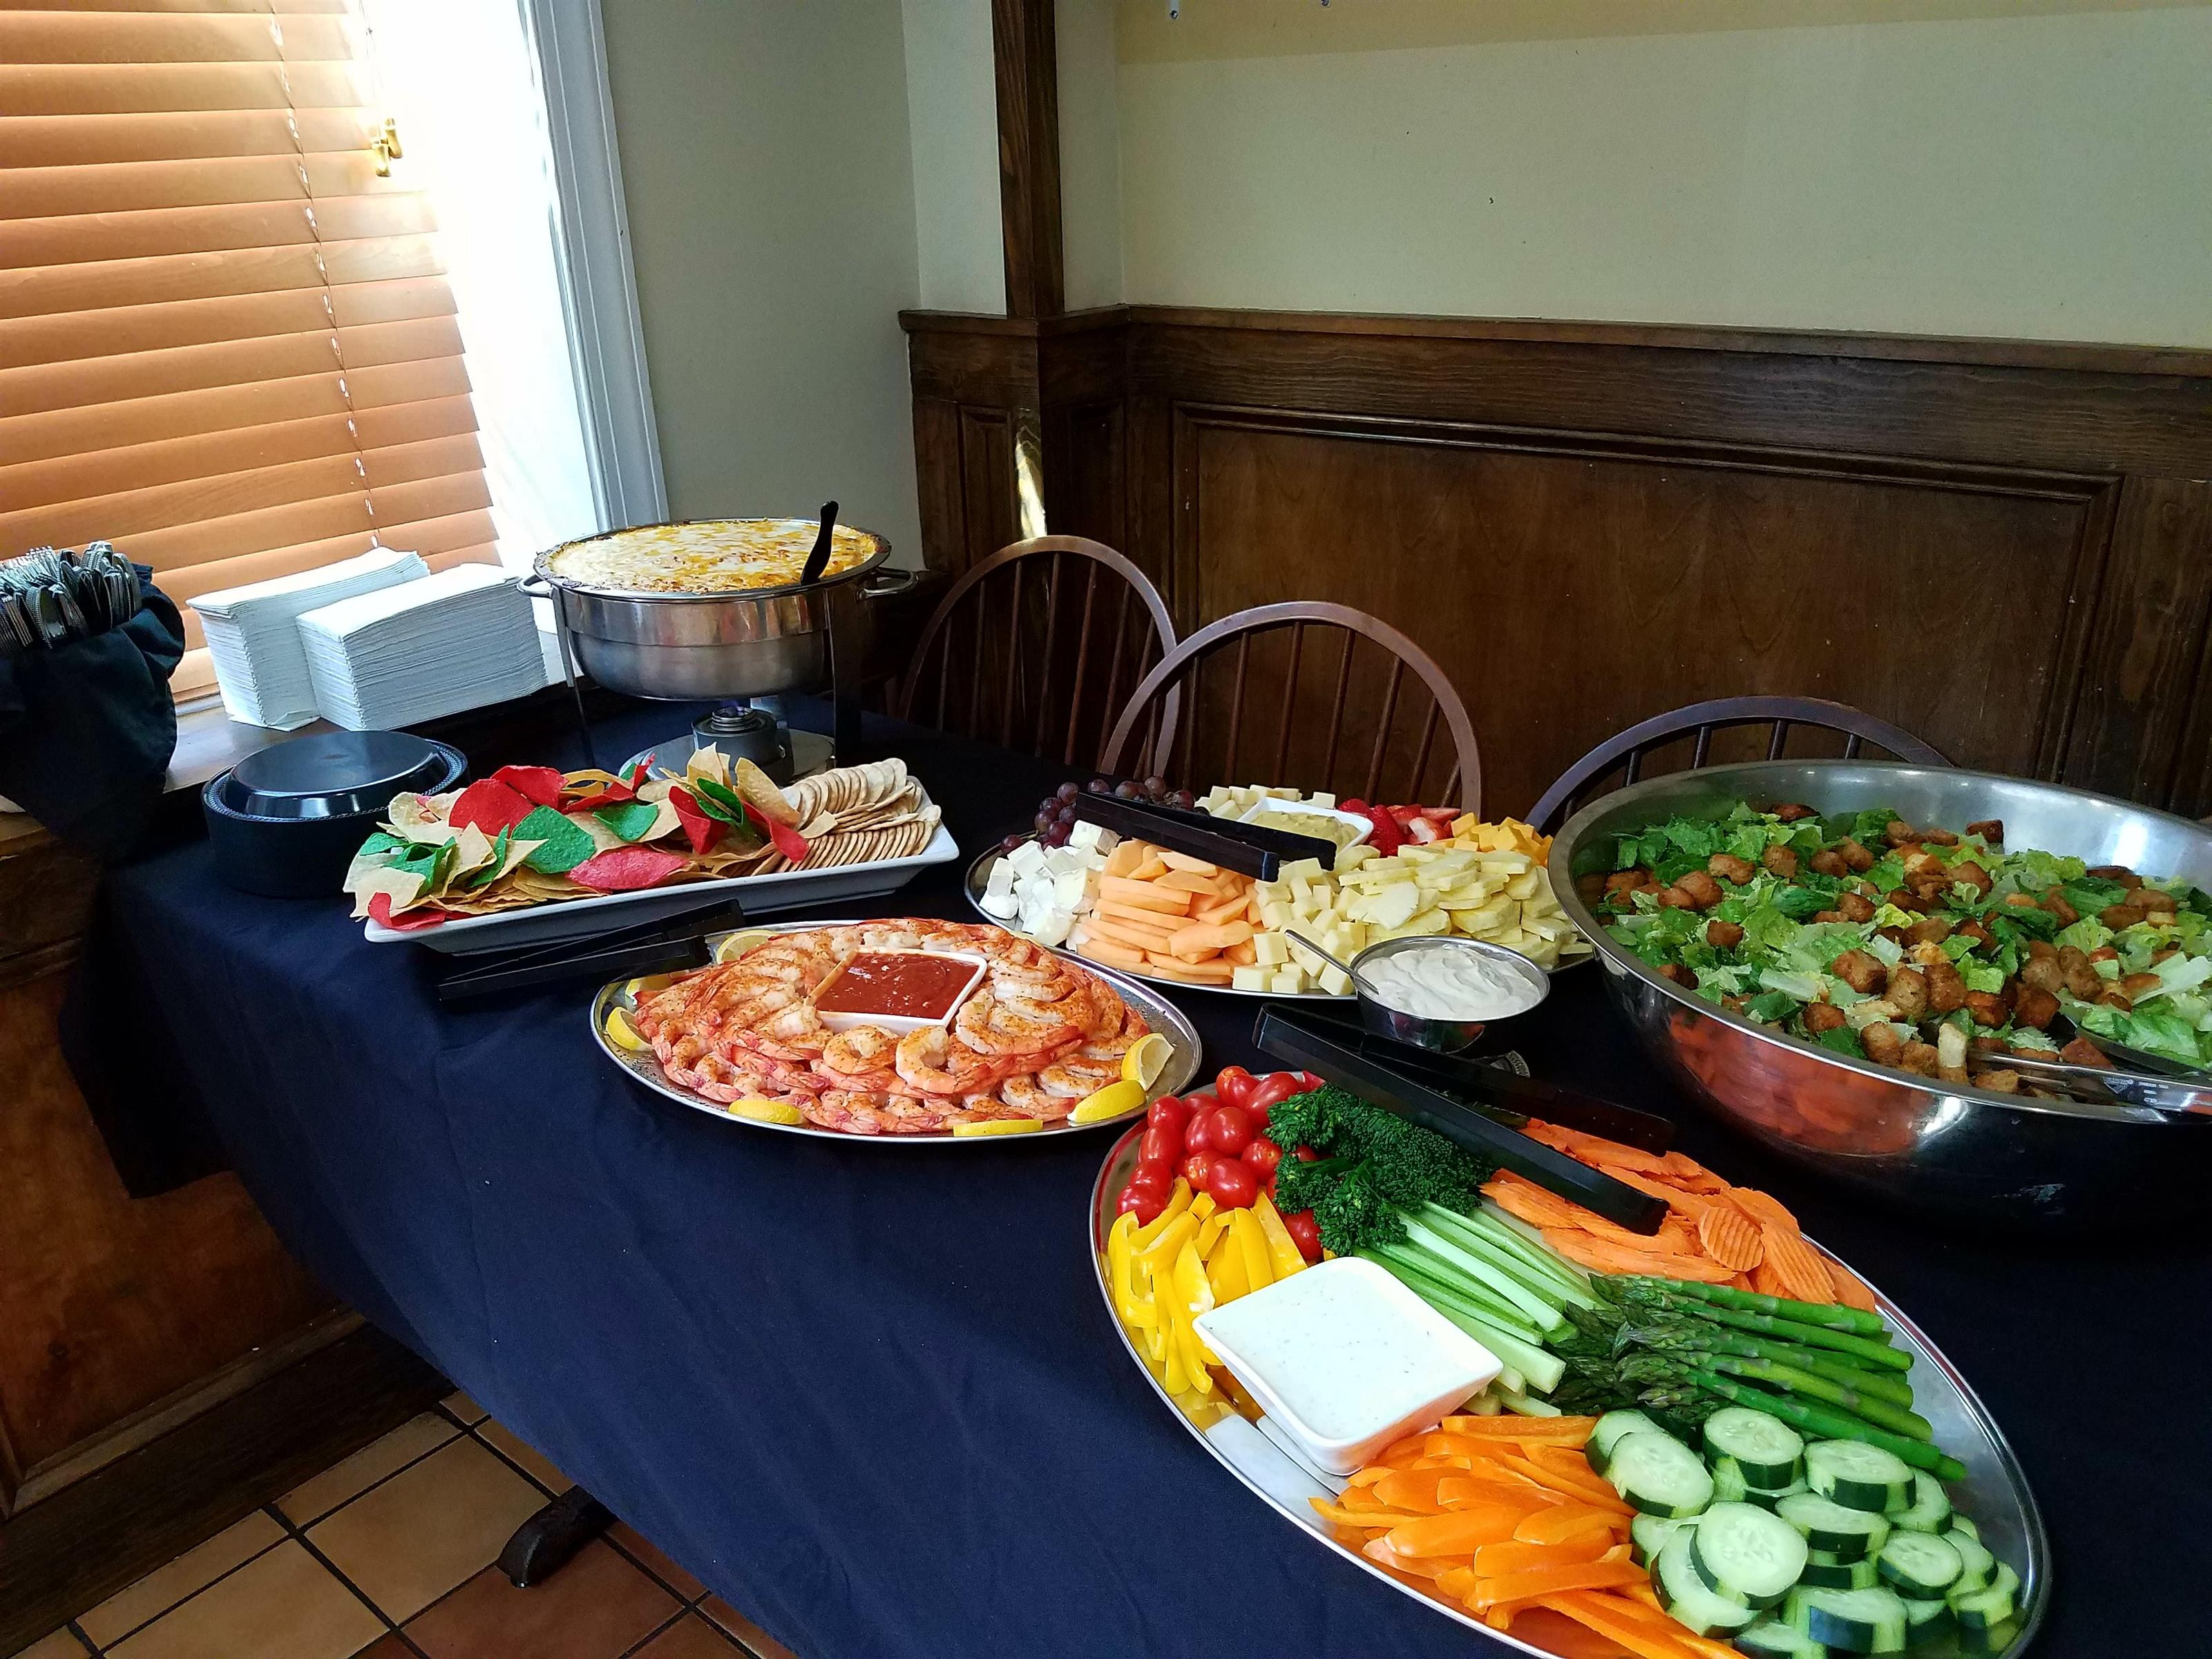 Catering table with blue table cloth topped with shrimp cocktail and vegetable platters